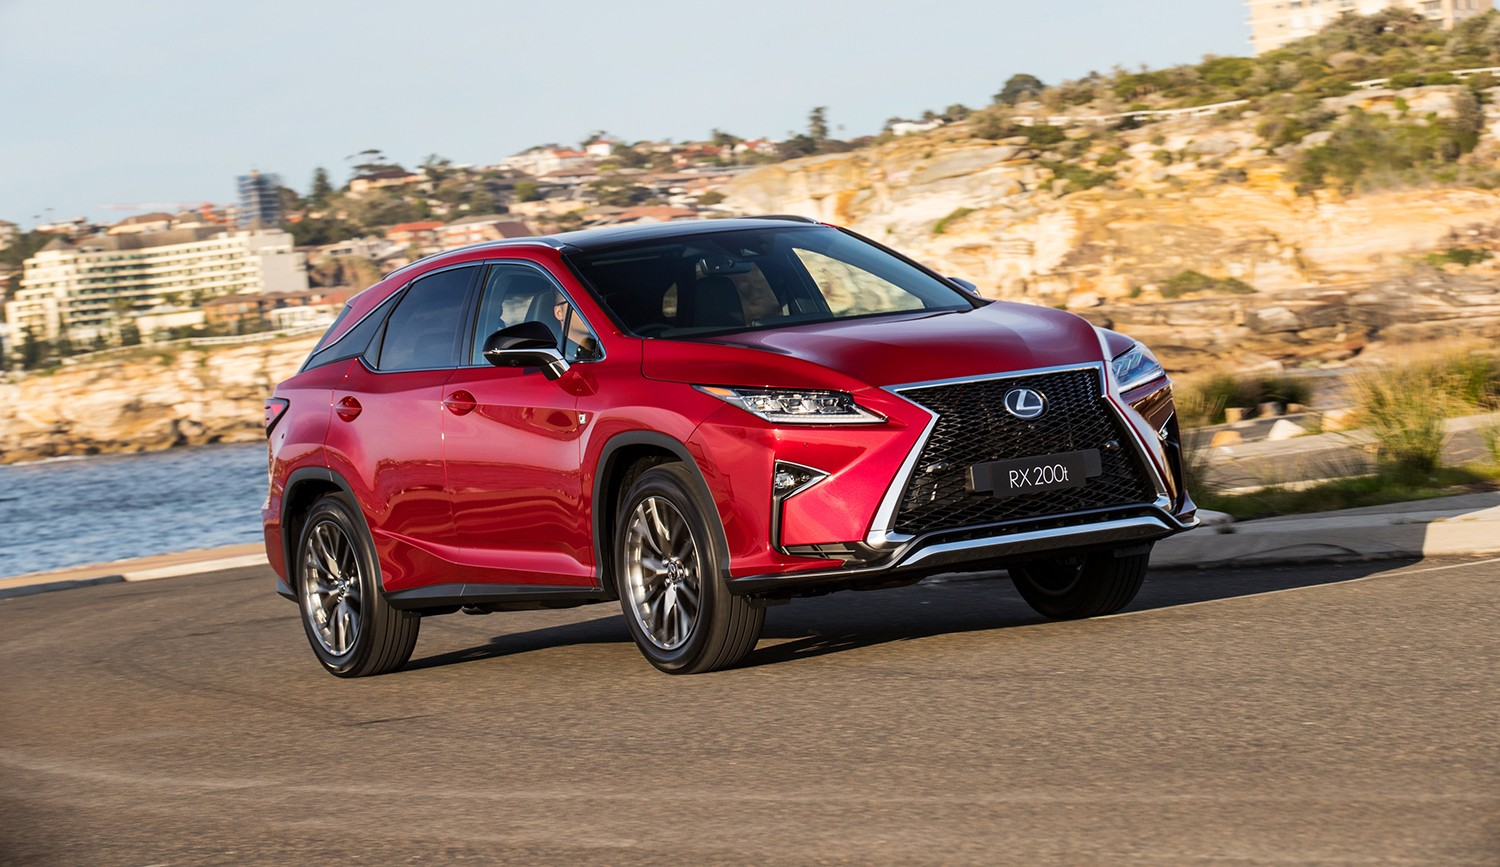 2016 Lexus Rx 350 F Sport >> 2017 Lexus RX 200t F Sport Launched in Australia, Does 0 to 100 KM/H in 9.5s - autoevolution